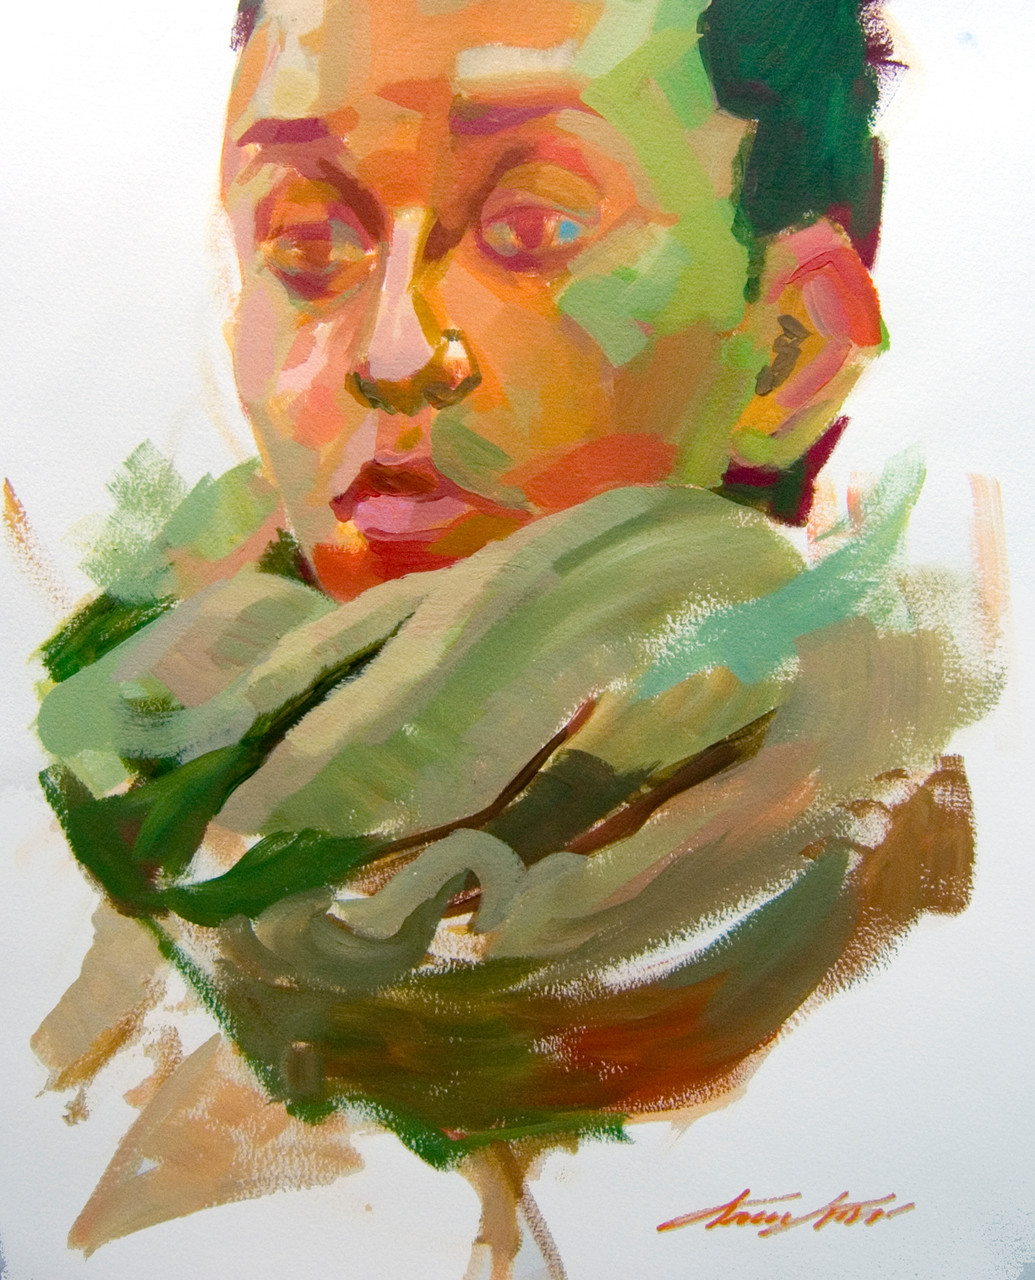 Sketched face of woman with scarf. Acrylic on paper